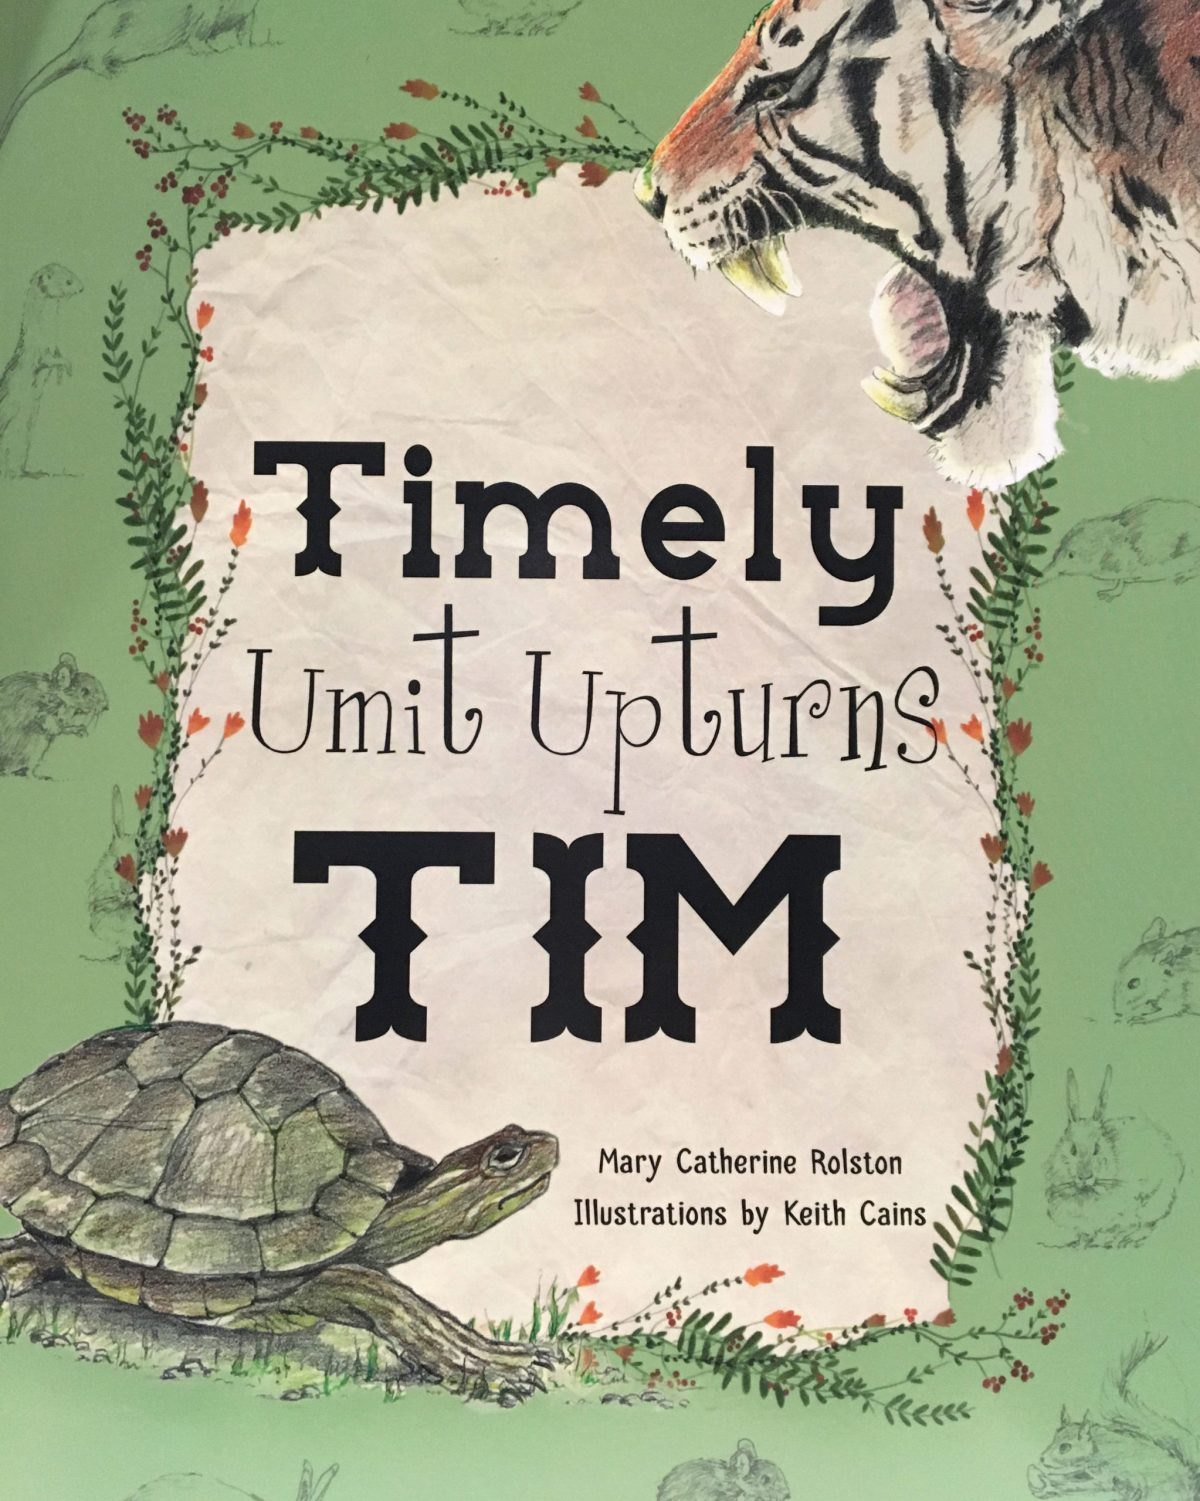 """The cover for the children's story """"Timely Umit Upturns Tim"""""""